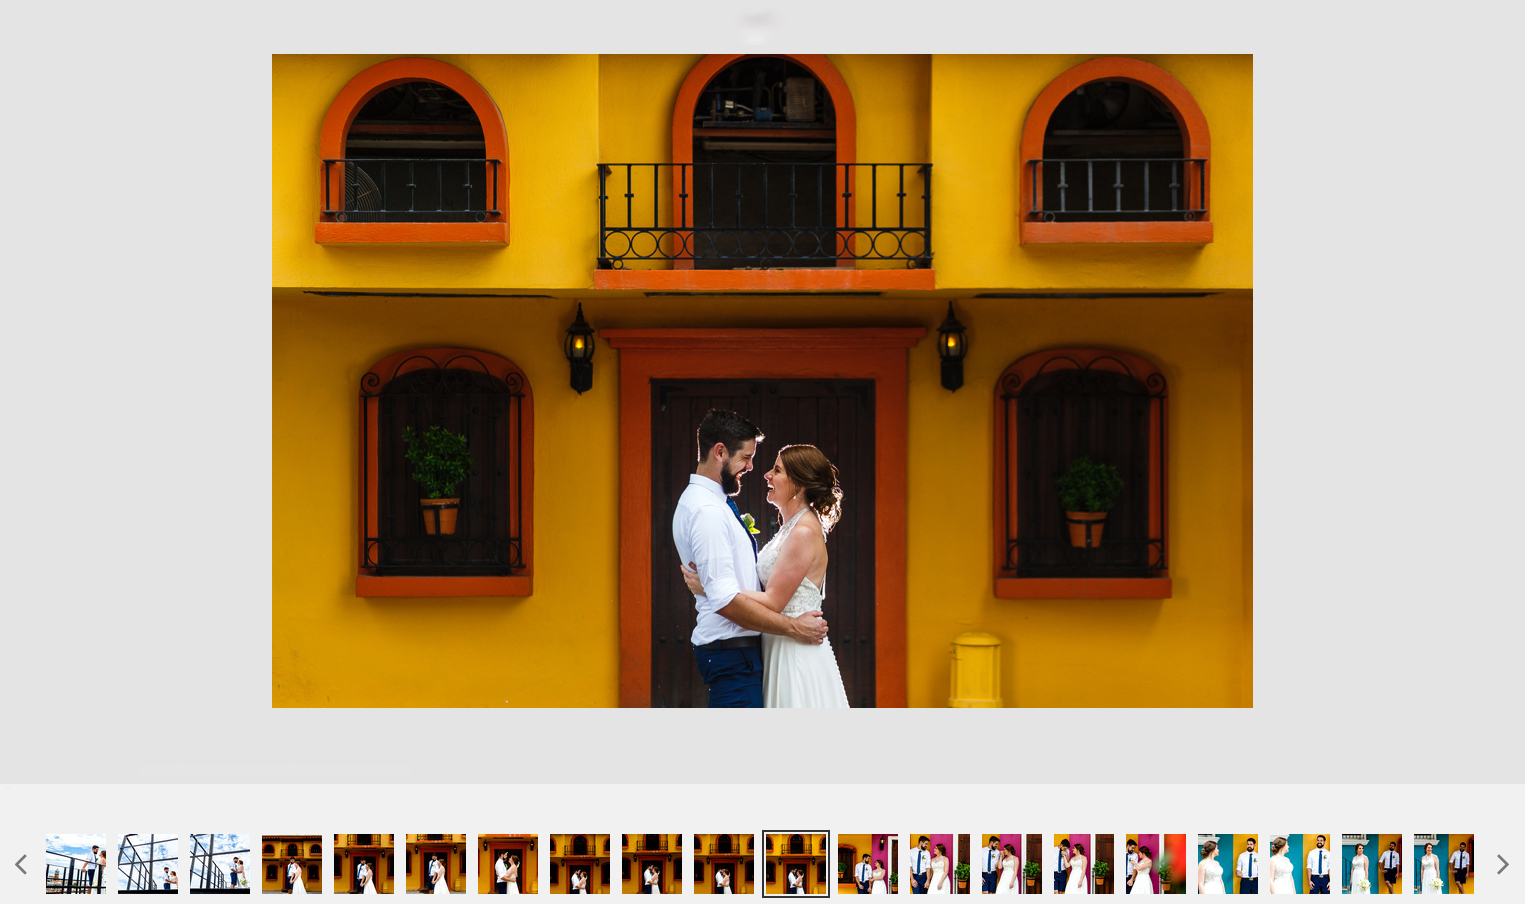 Groom and bride laughing at each other outside a yellow Mexican style facade.